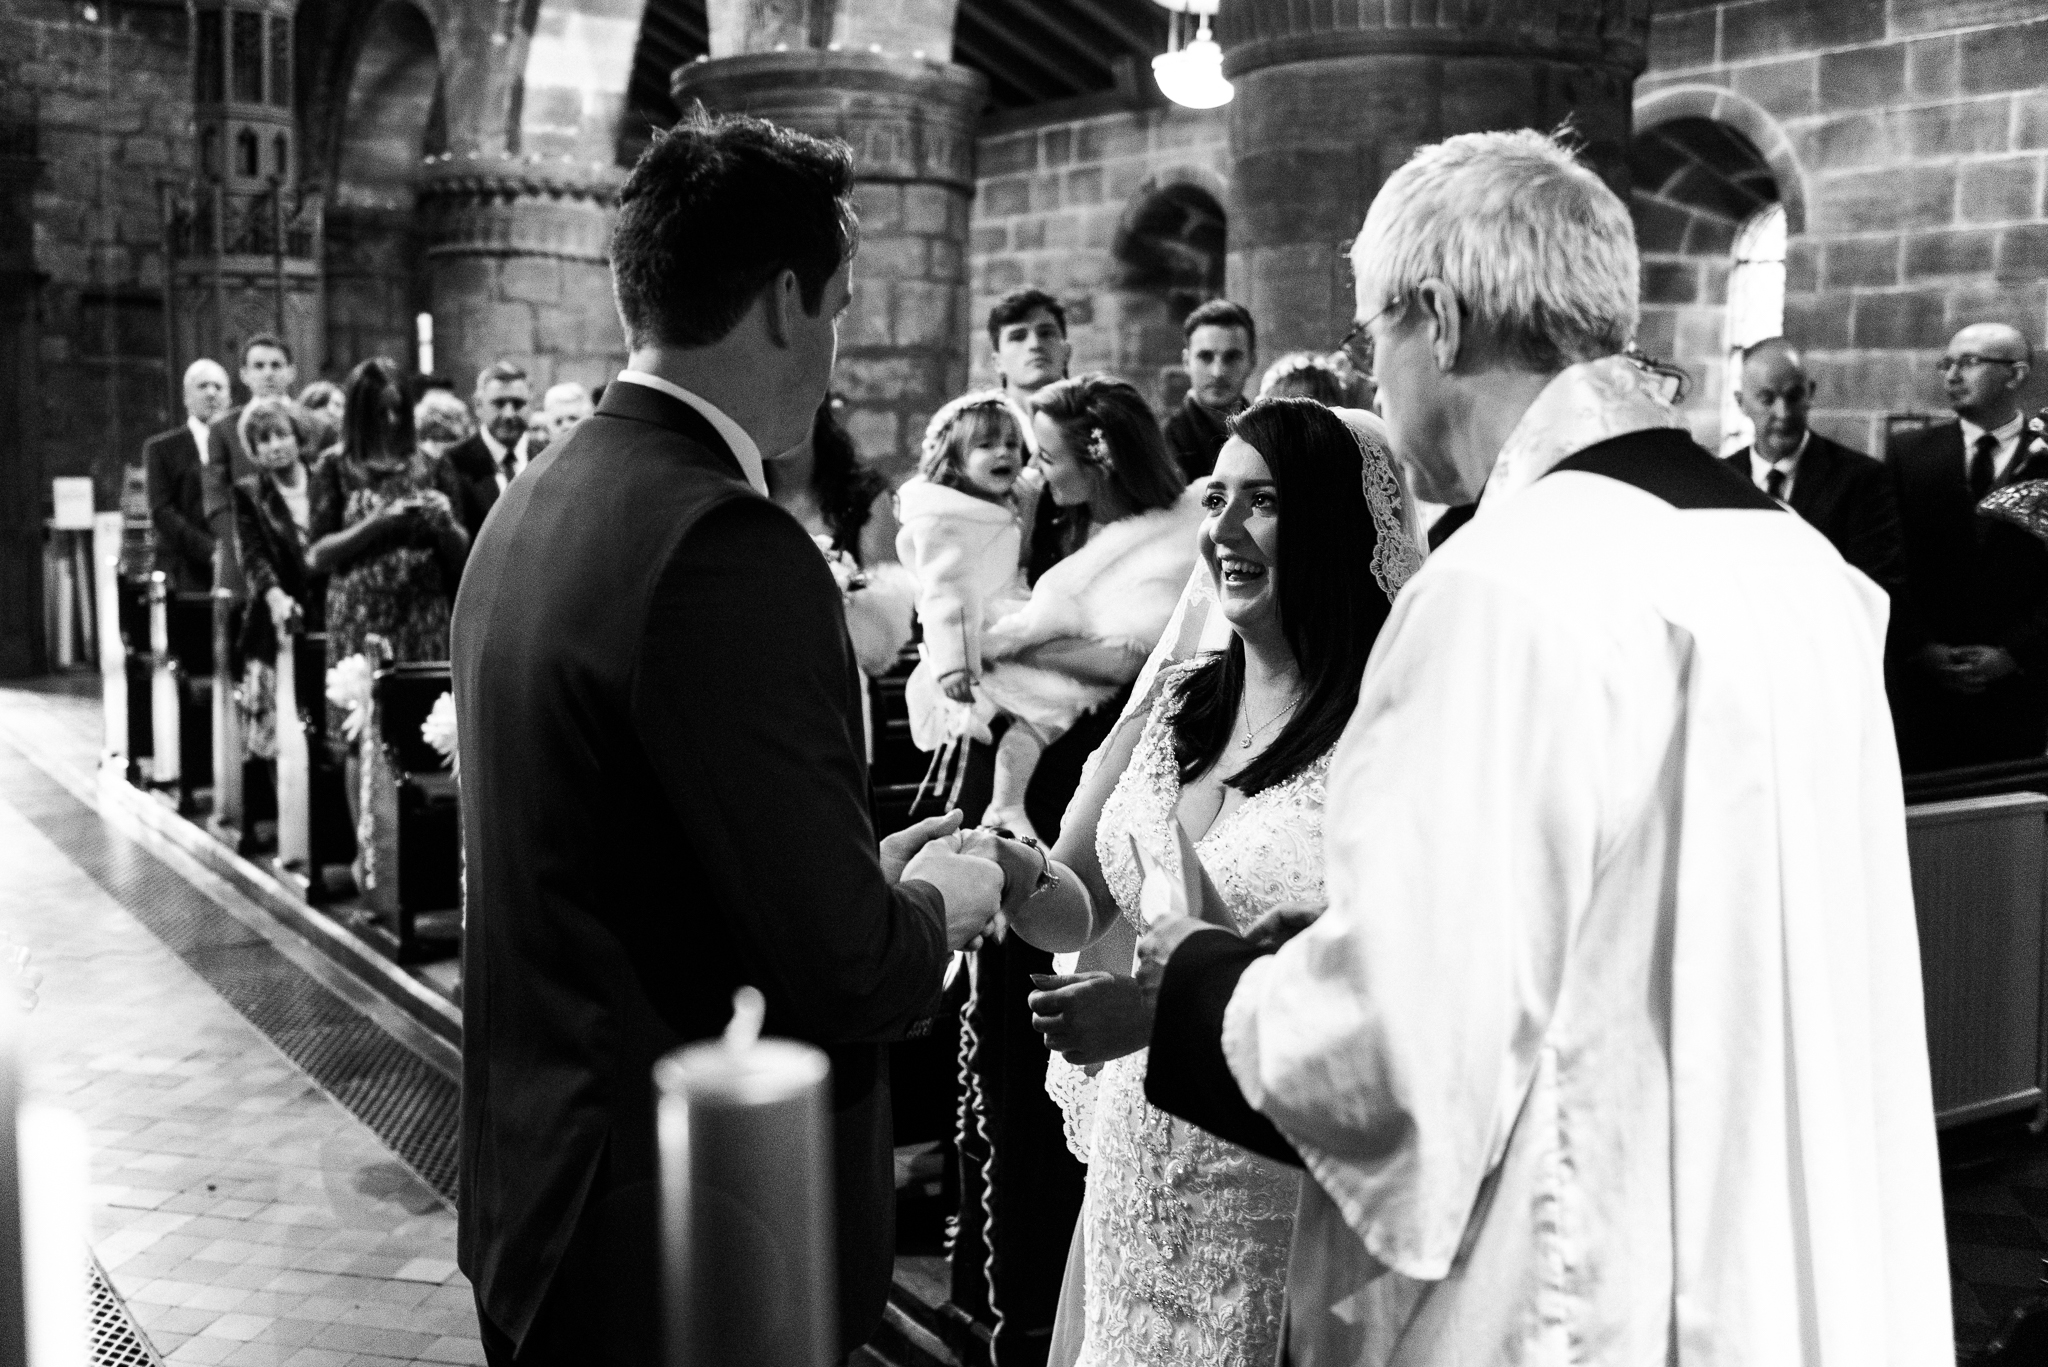 Winter Wedding Christmas Wedding Photography Stafford, Staffordshire Saint Chad Weston Hall Documentary Photographer - Jenny Harper-22.jpg